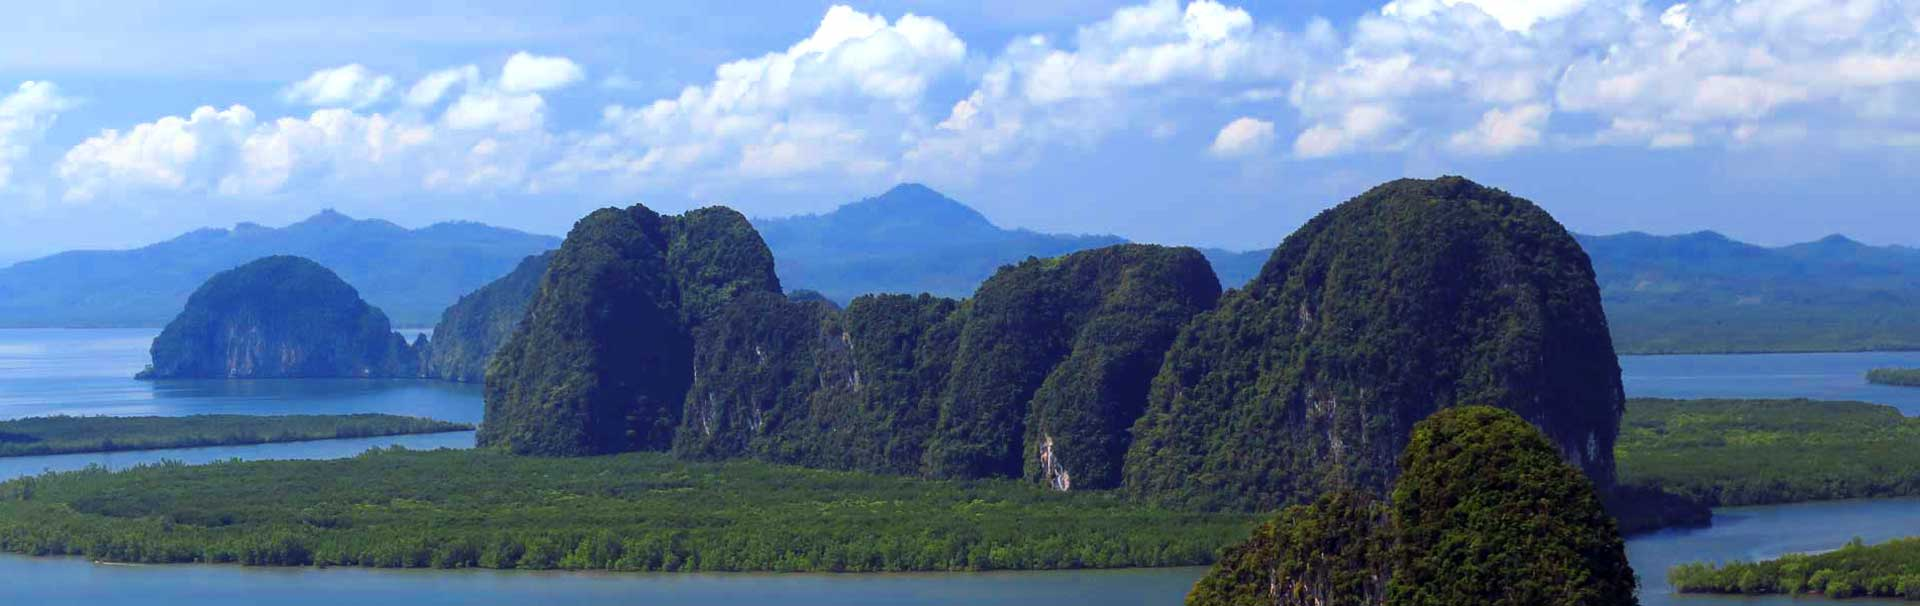 Wide view of Phang Nga Bay